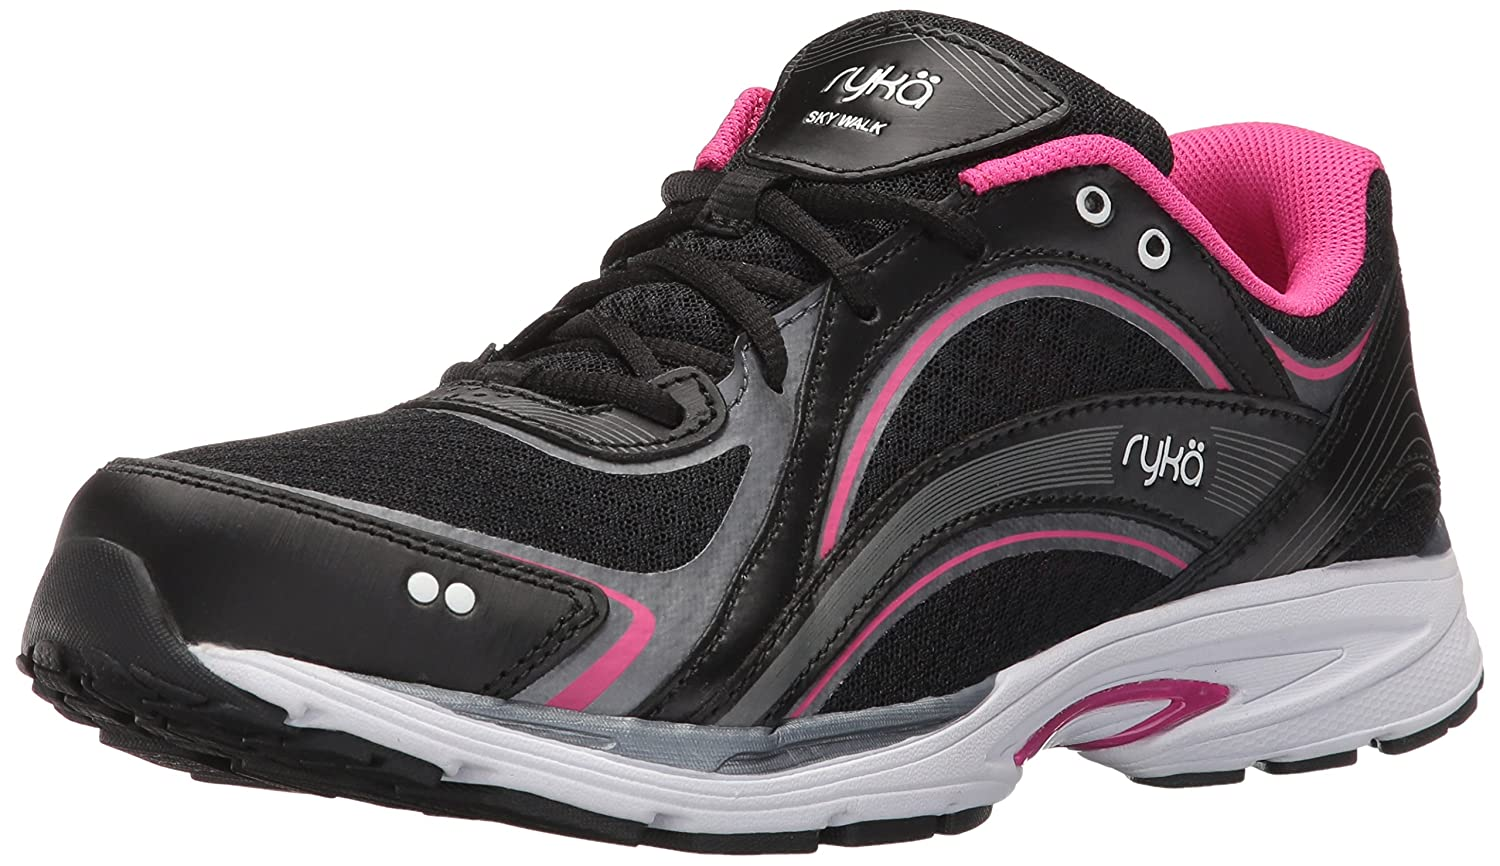 Ryka Women's Sky Walking Shoe B01KWBVRHG 11 B(M) US|Black/Pink